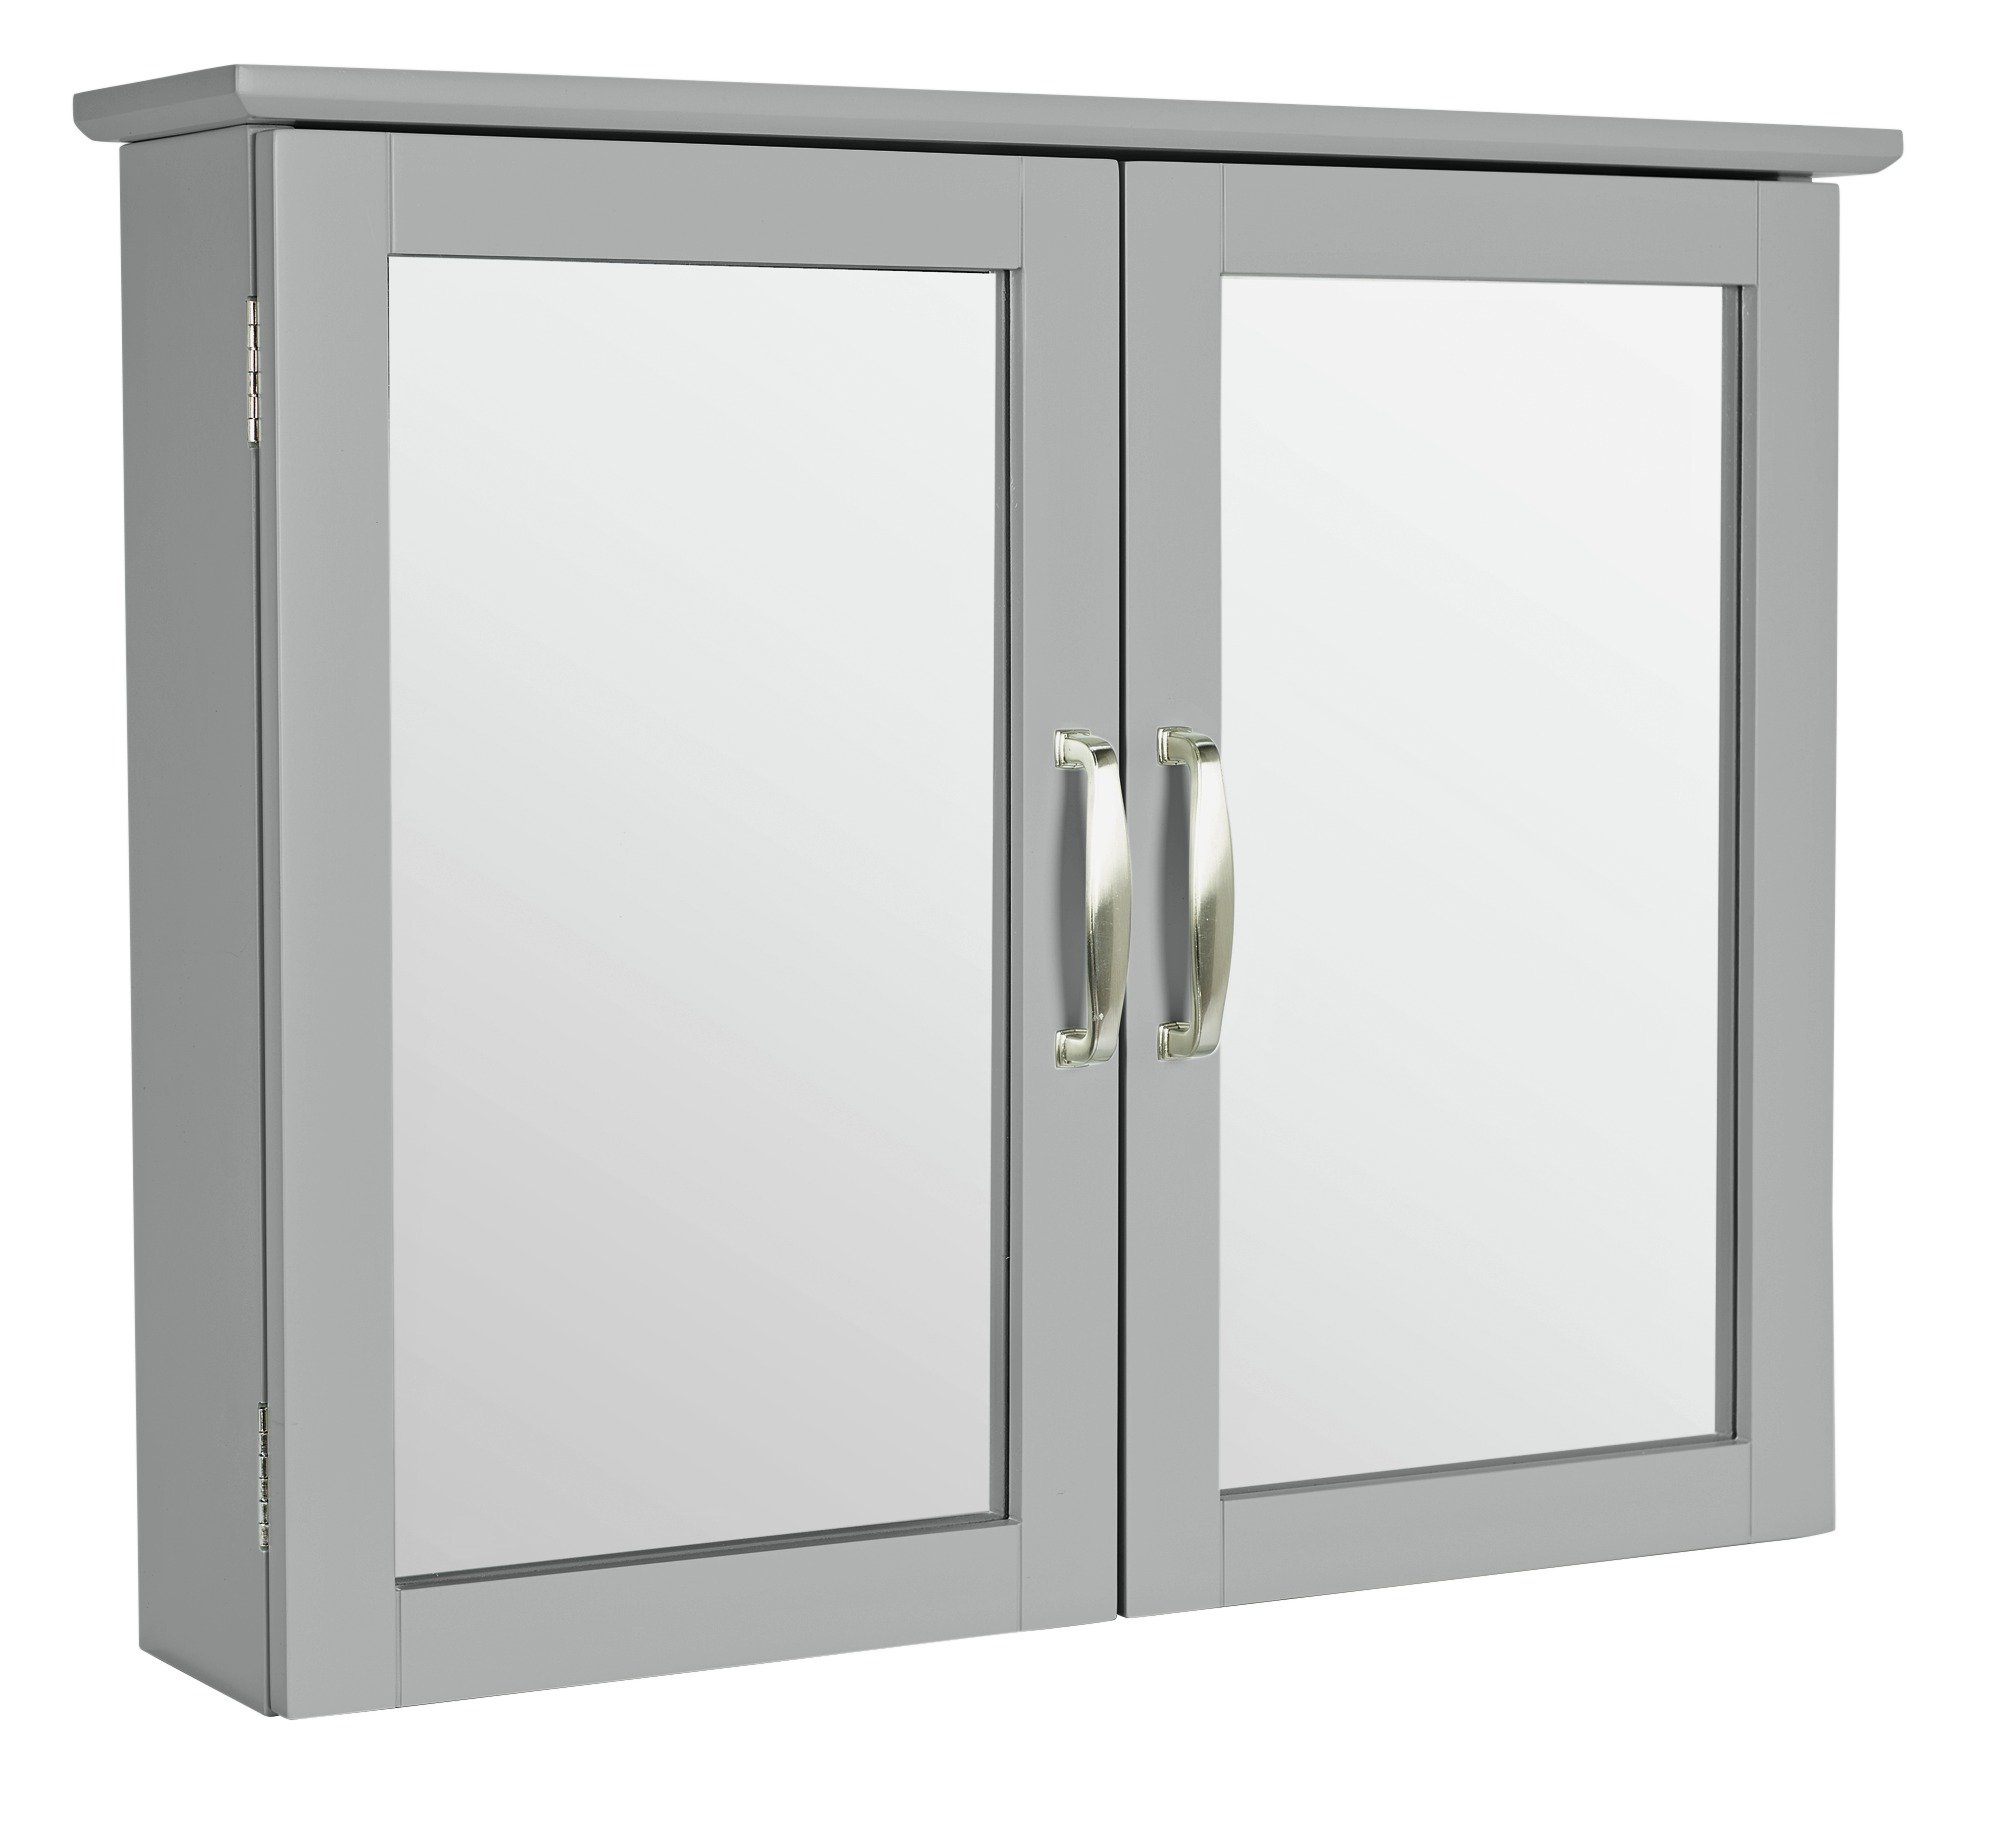 bathroom wall storage cabinets. Collection New Tongue And Groove Mirrored Wall Cabinet -Grey Bathroom Storage Cabinets